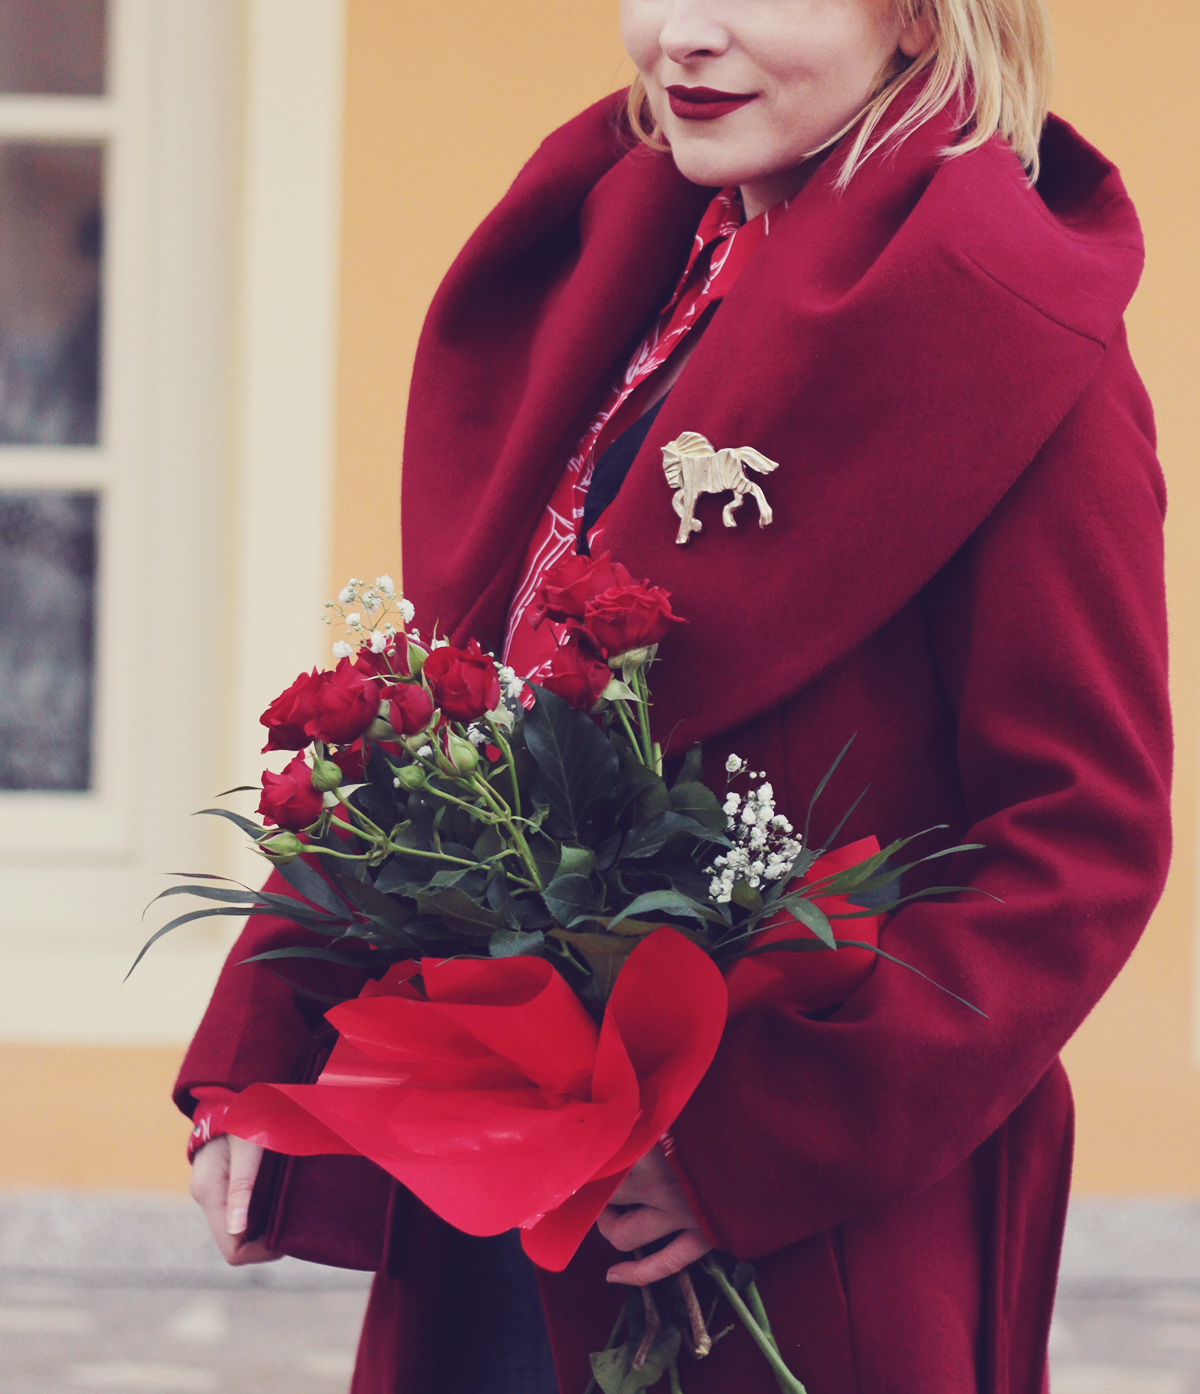 colorblocking, red, winter look, red flamingo shirt, red roses bouquet, spring, red coat, big horse brooch